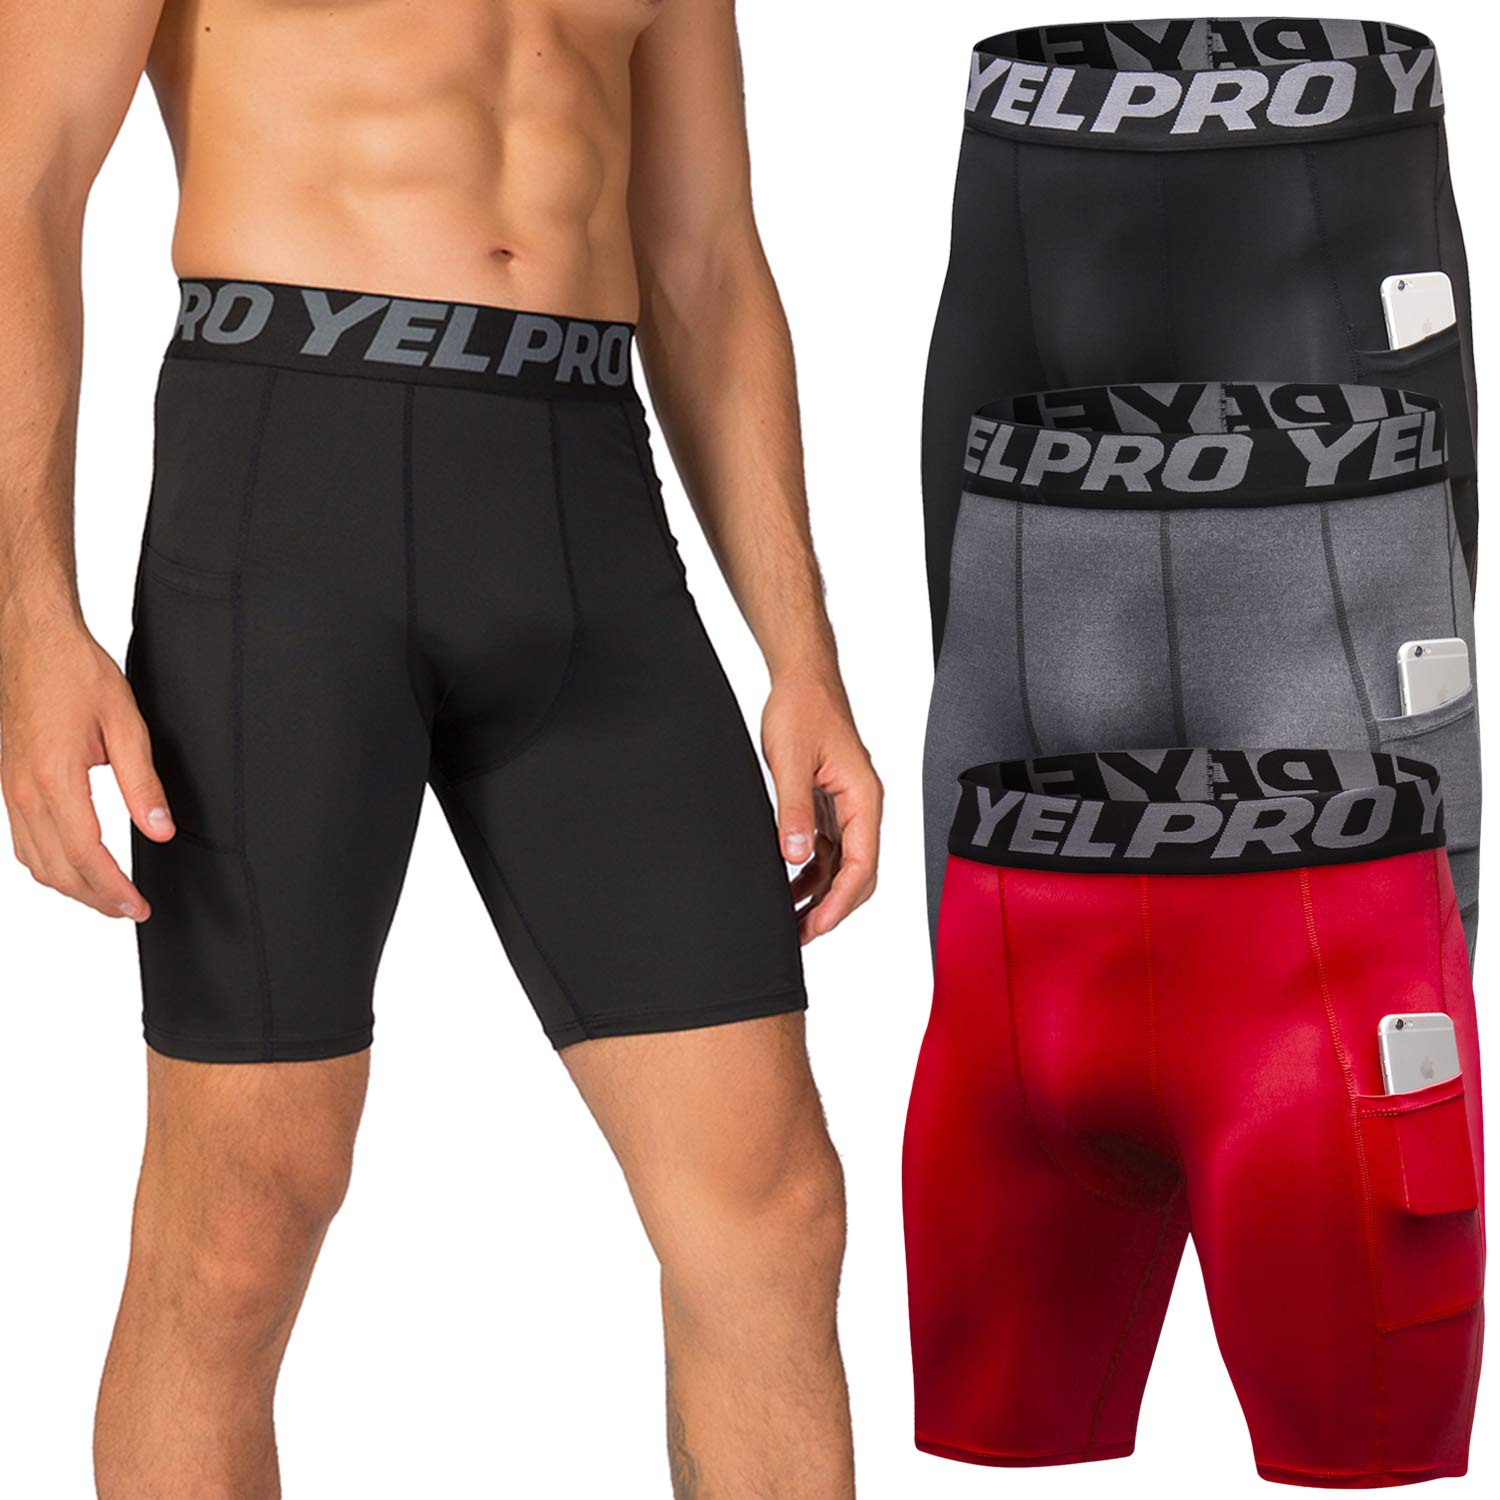 Lavento Men's Compression Shorts Sports Baselayer Cool Dry Tights (3 Pack-3814 Black/Gray/Red,X-Large) by Lavento